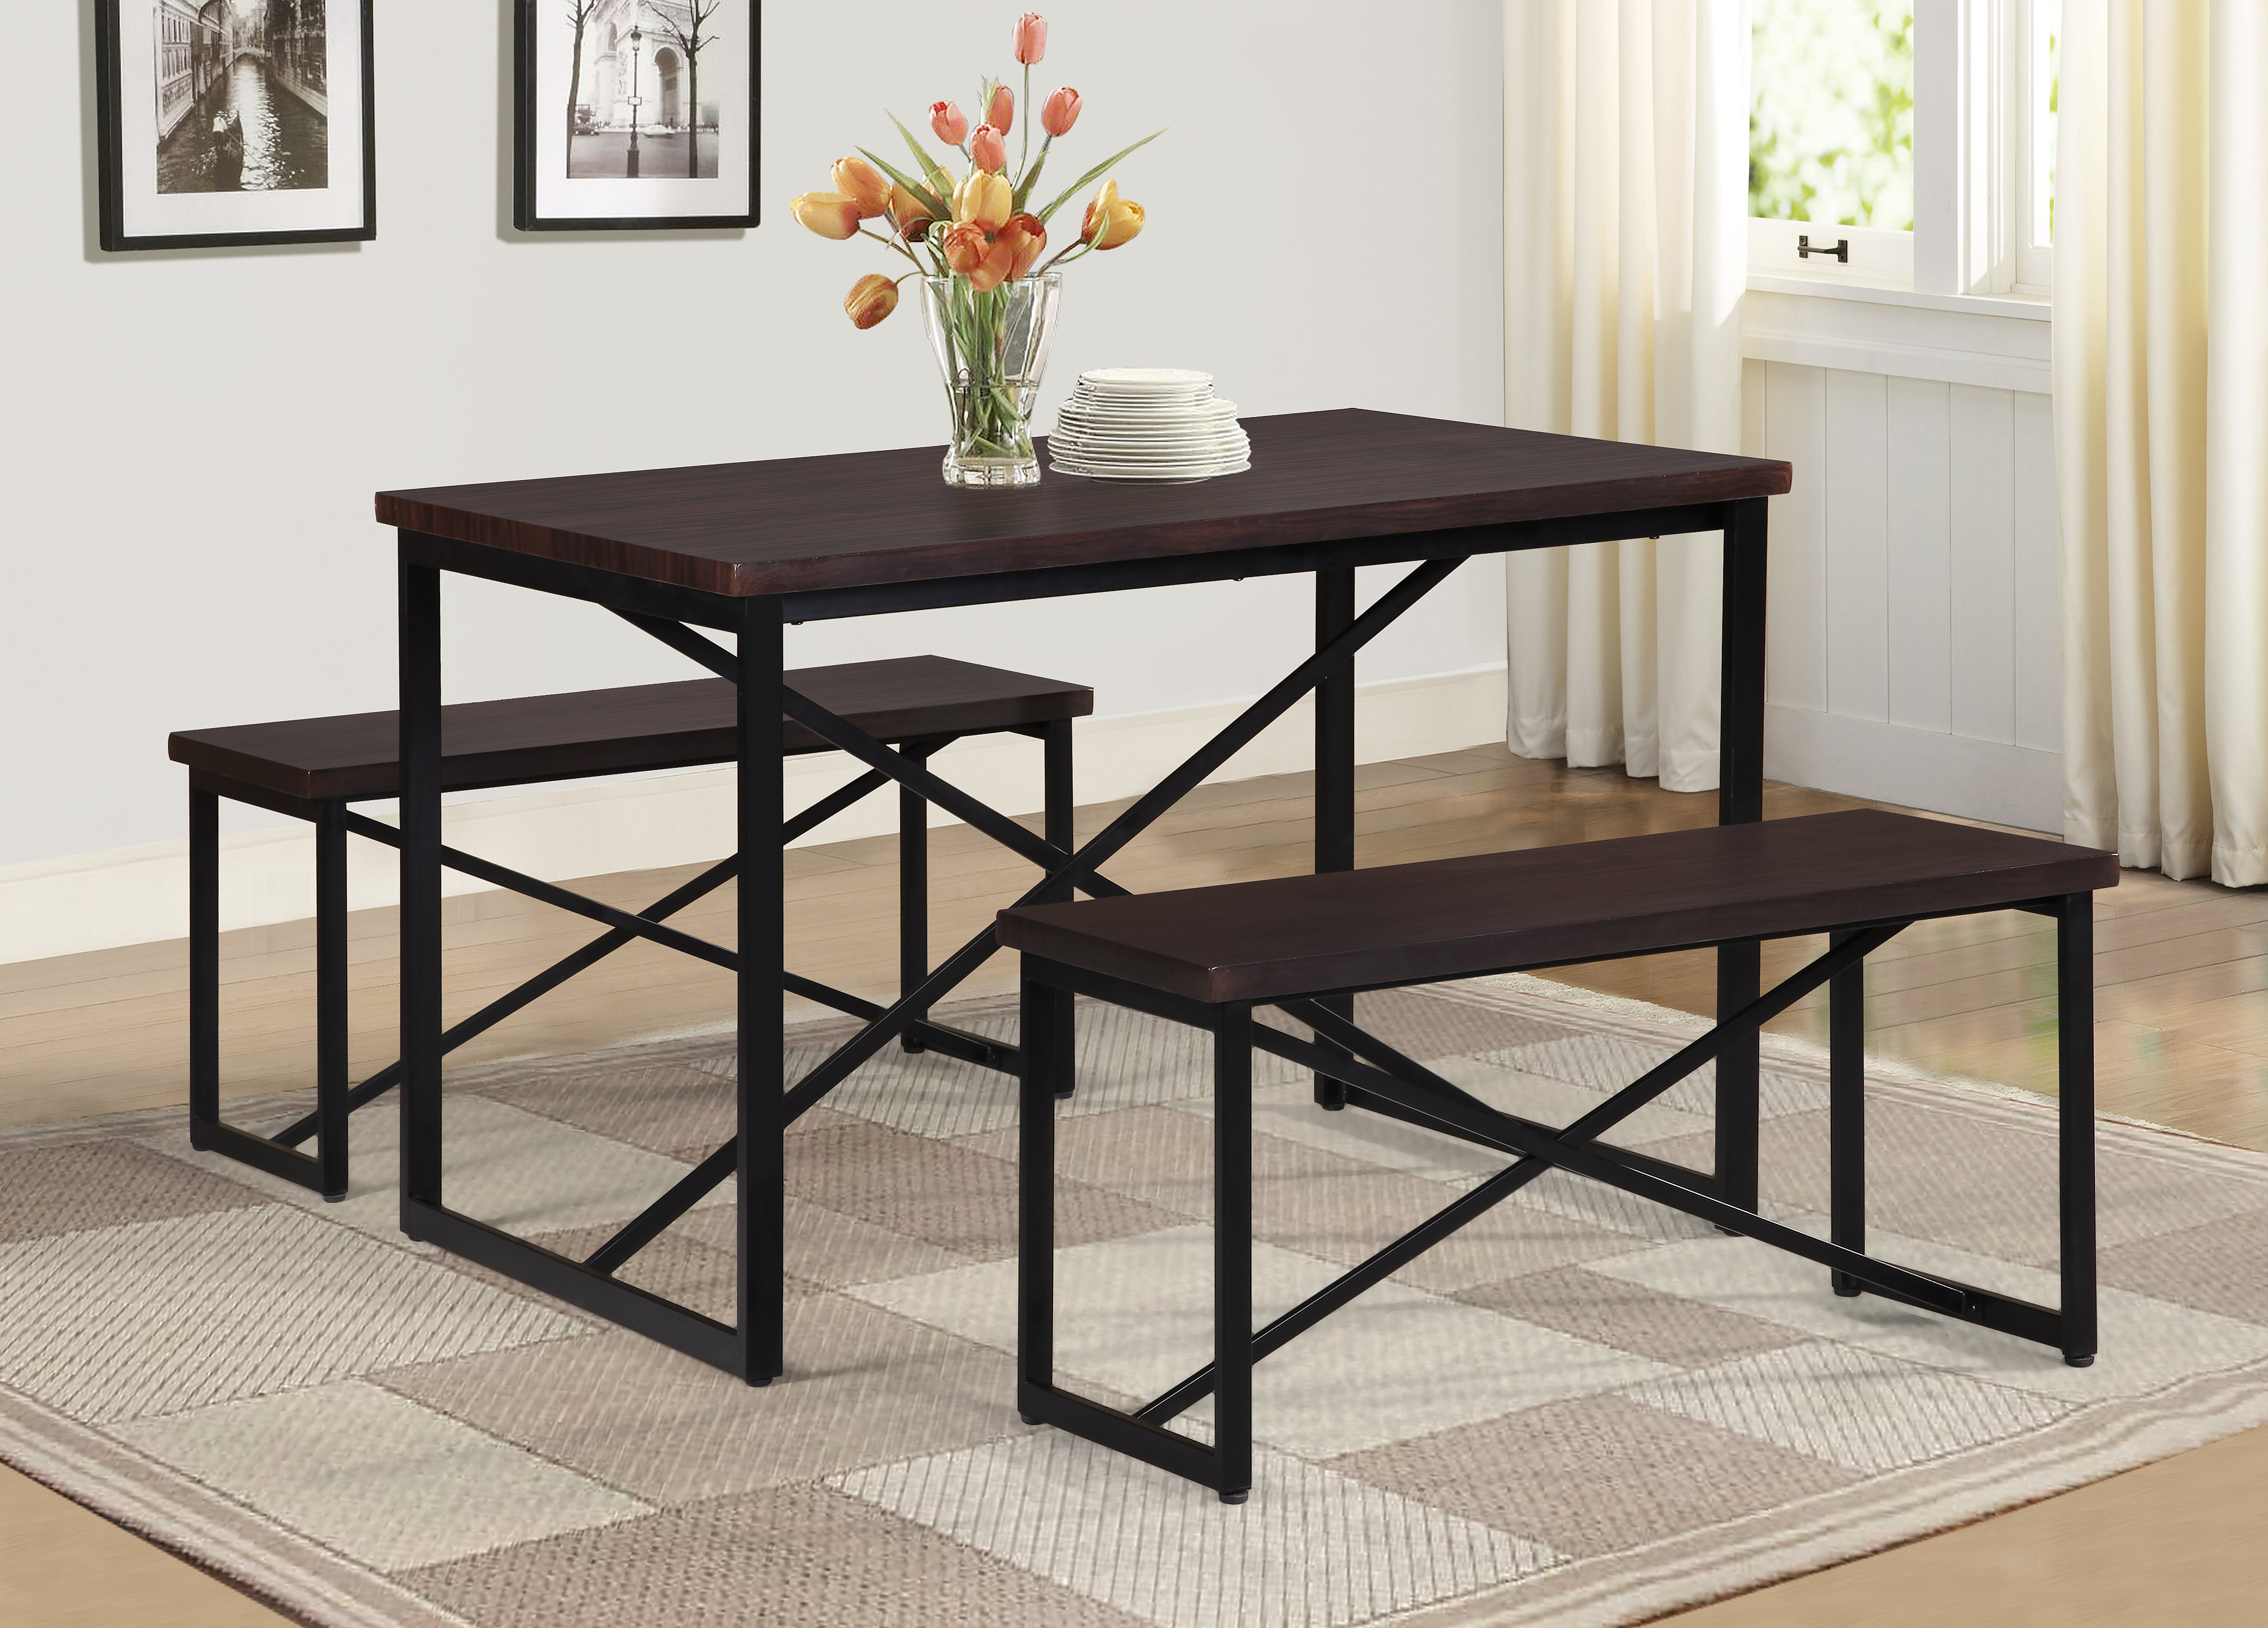 Wayfair With Regard To Isolde 3 Piece Dining Sets (View 6 of 25)